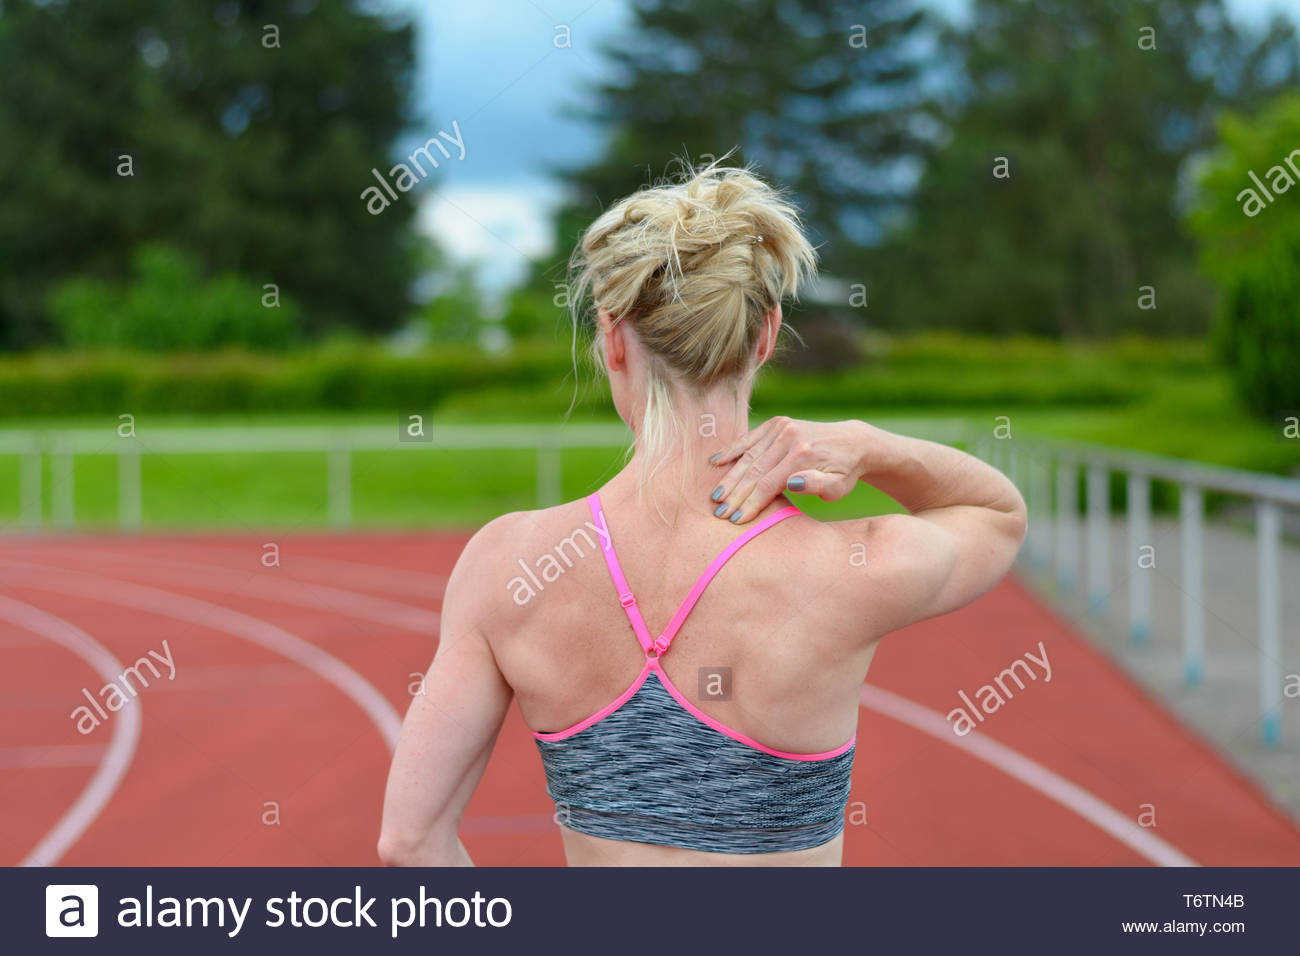 Rear view of sprinter massaging her own neck - Stock Image